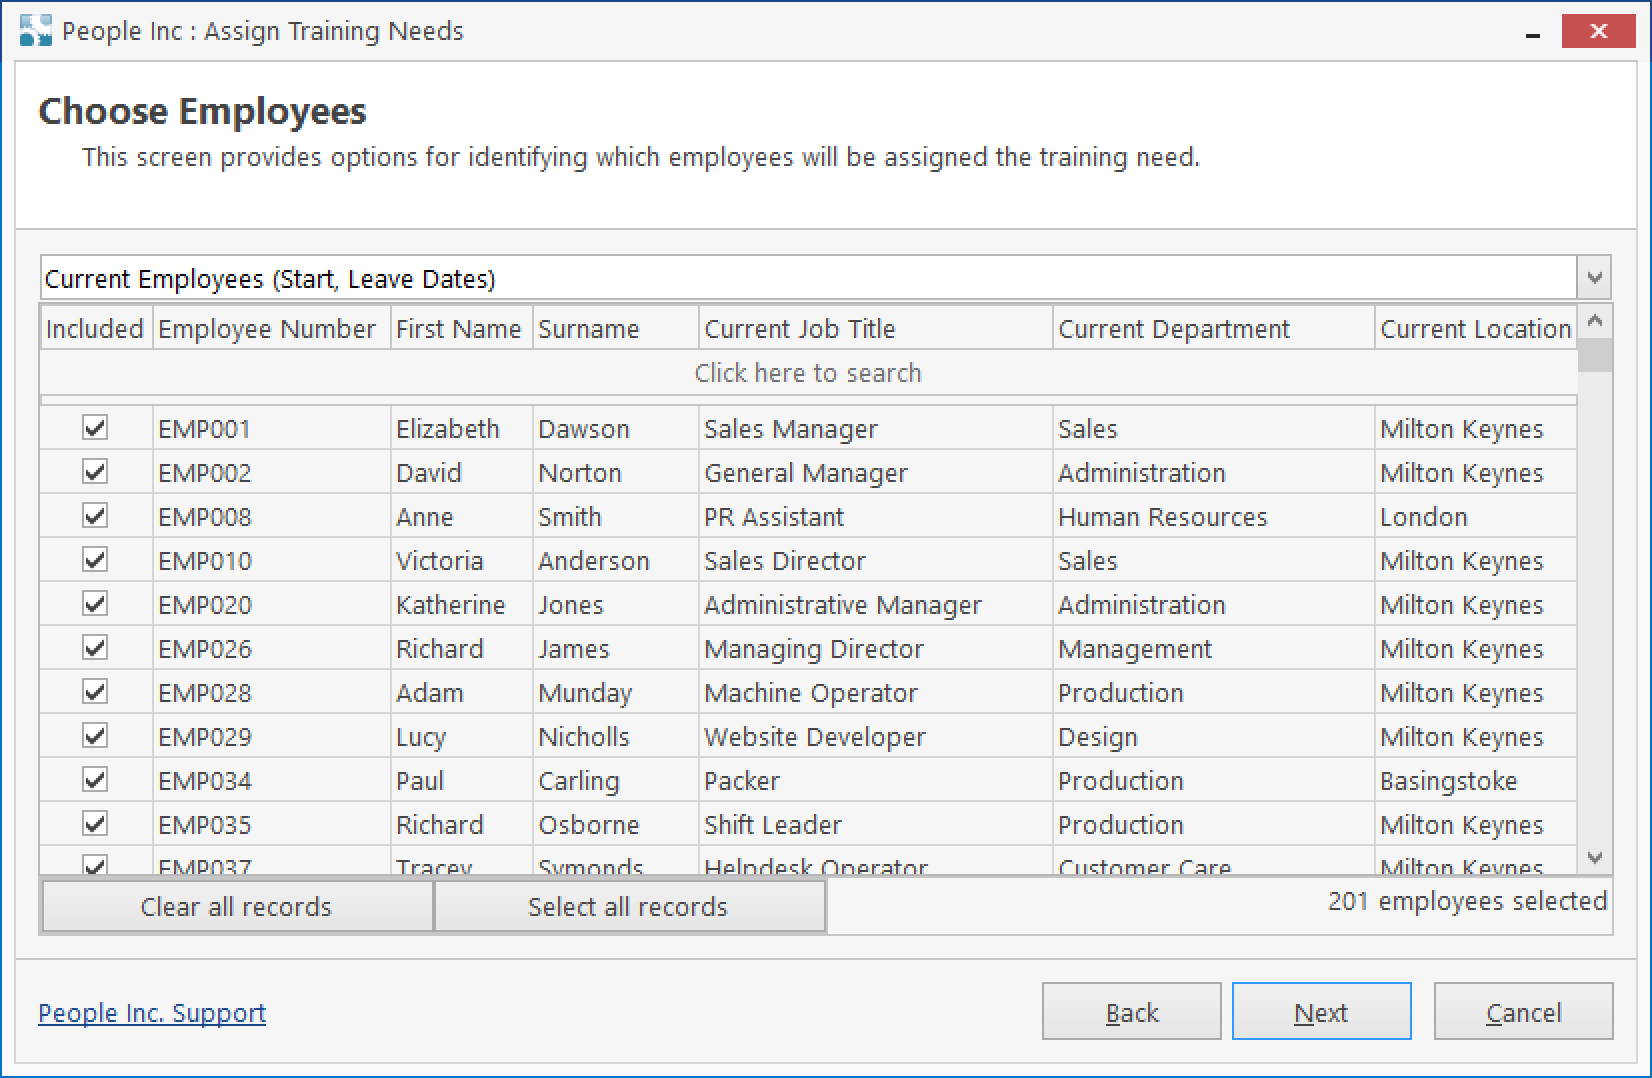 People Inc HR system tool listing employees to assign training needs to